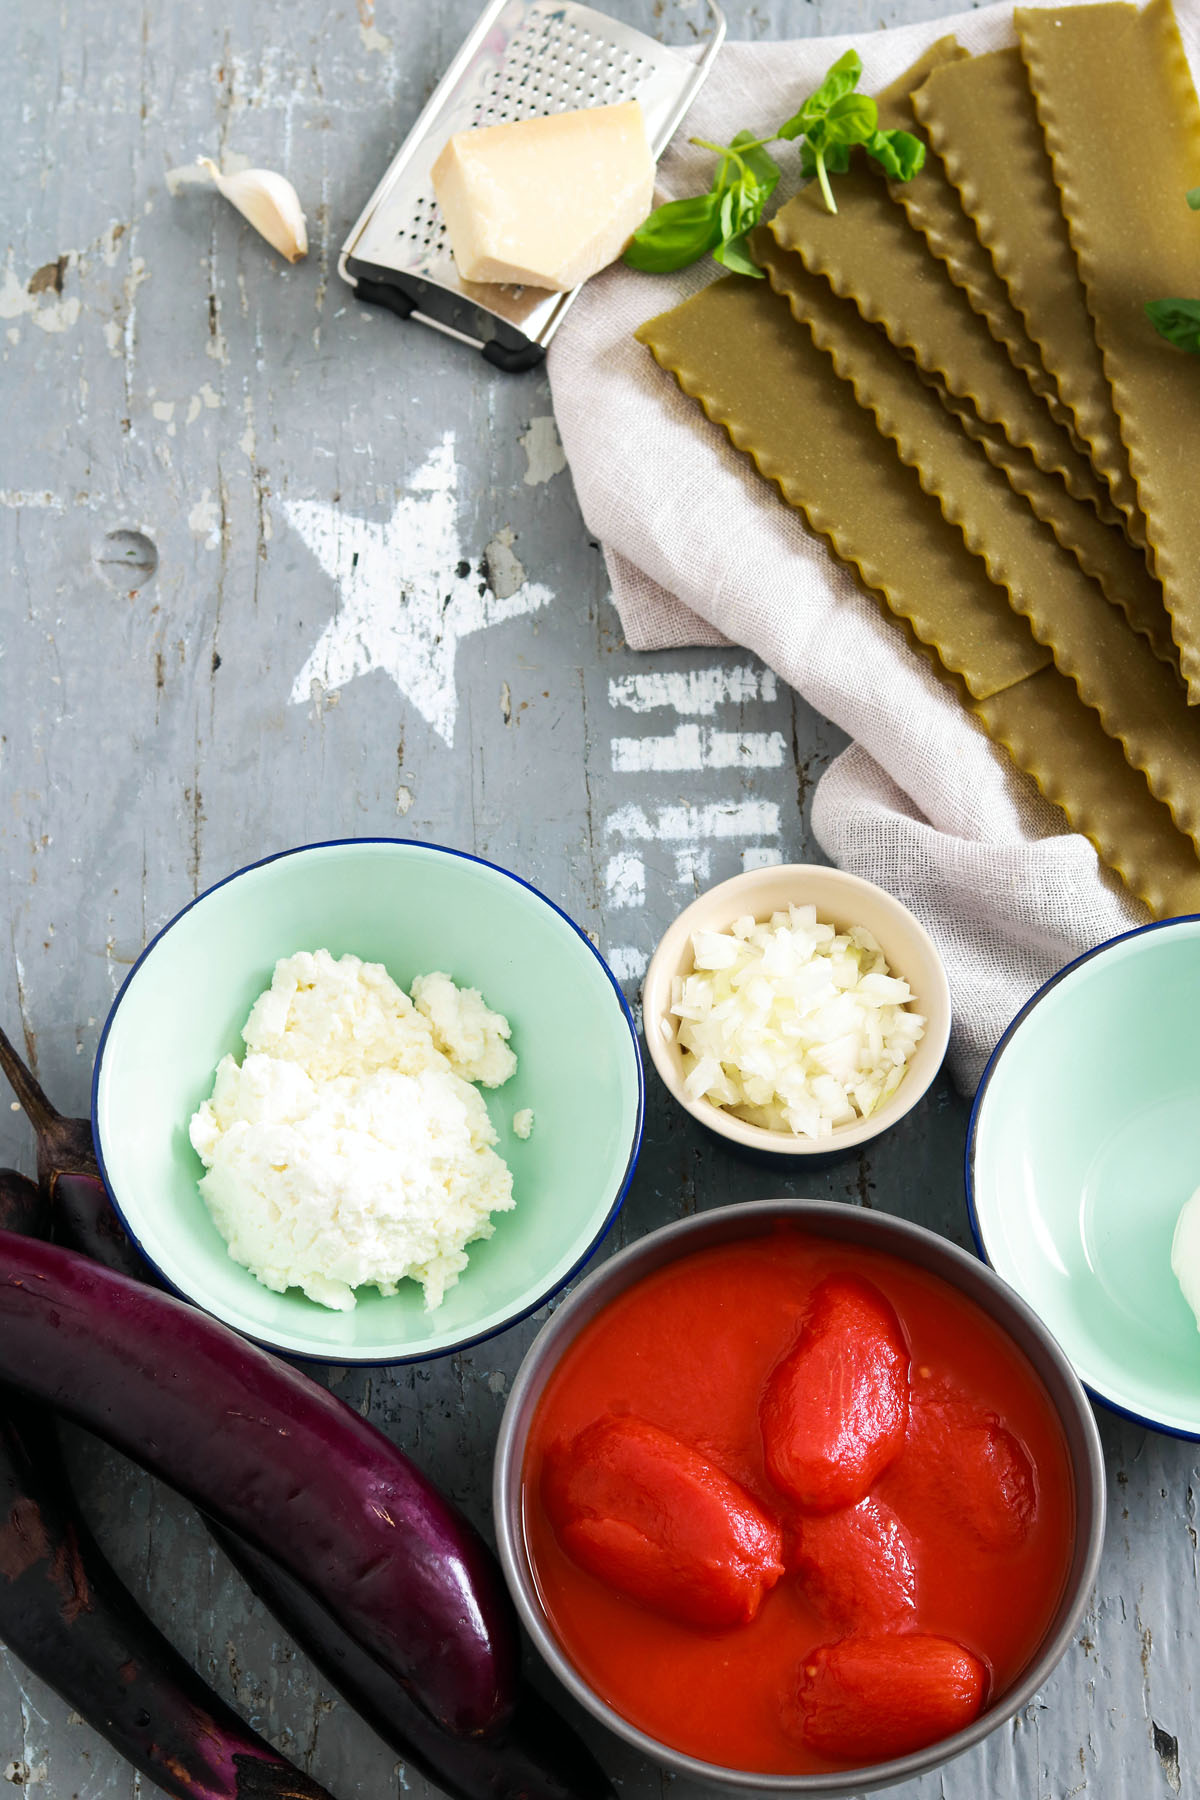 Spinach-Lasagna-Roll-ups-with-Eggplant-mise-en-place-on-grey-wood-board